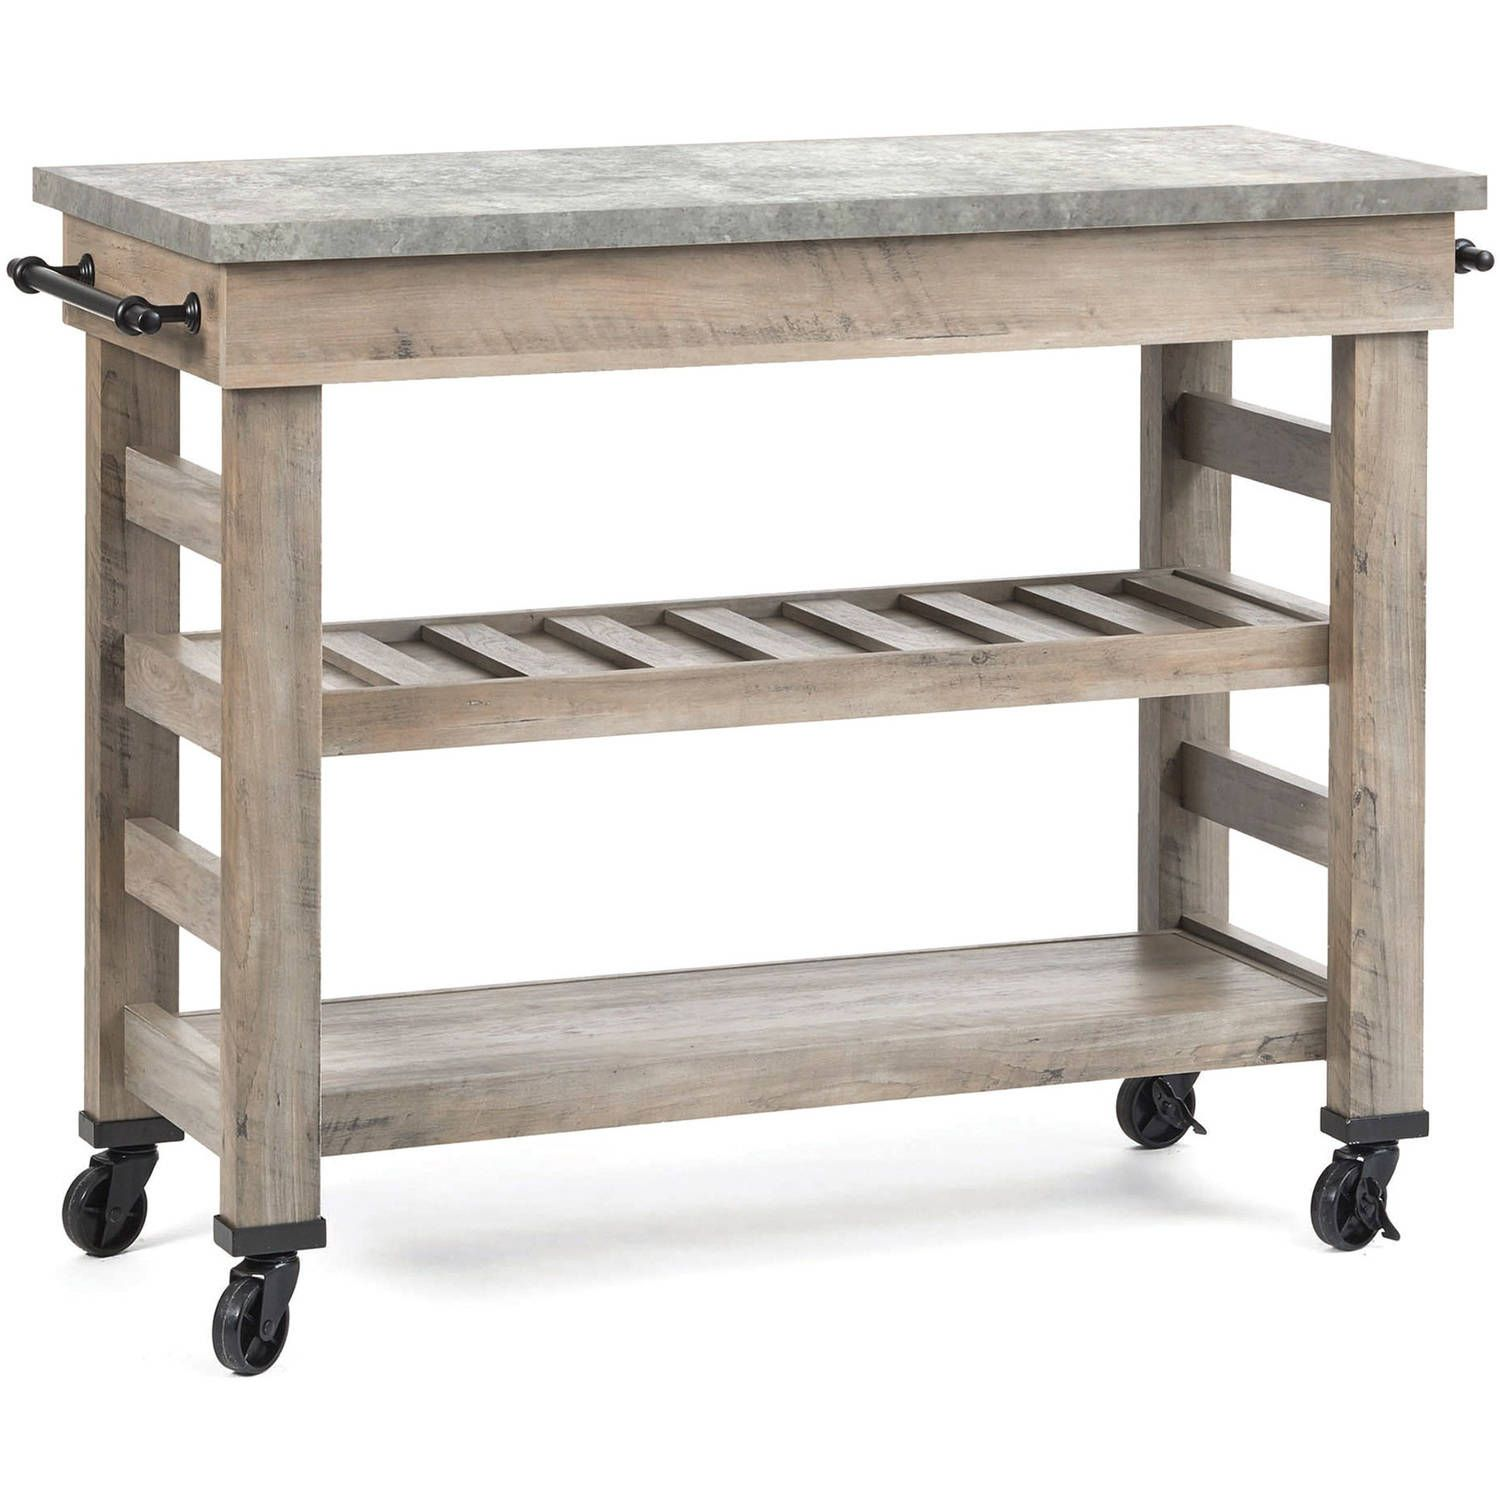 Best Modern Farm House Design Products From Walmart Tv Stand Decor Farmhouse Tv Stand Farmhouse Storage Cabinets